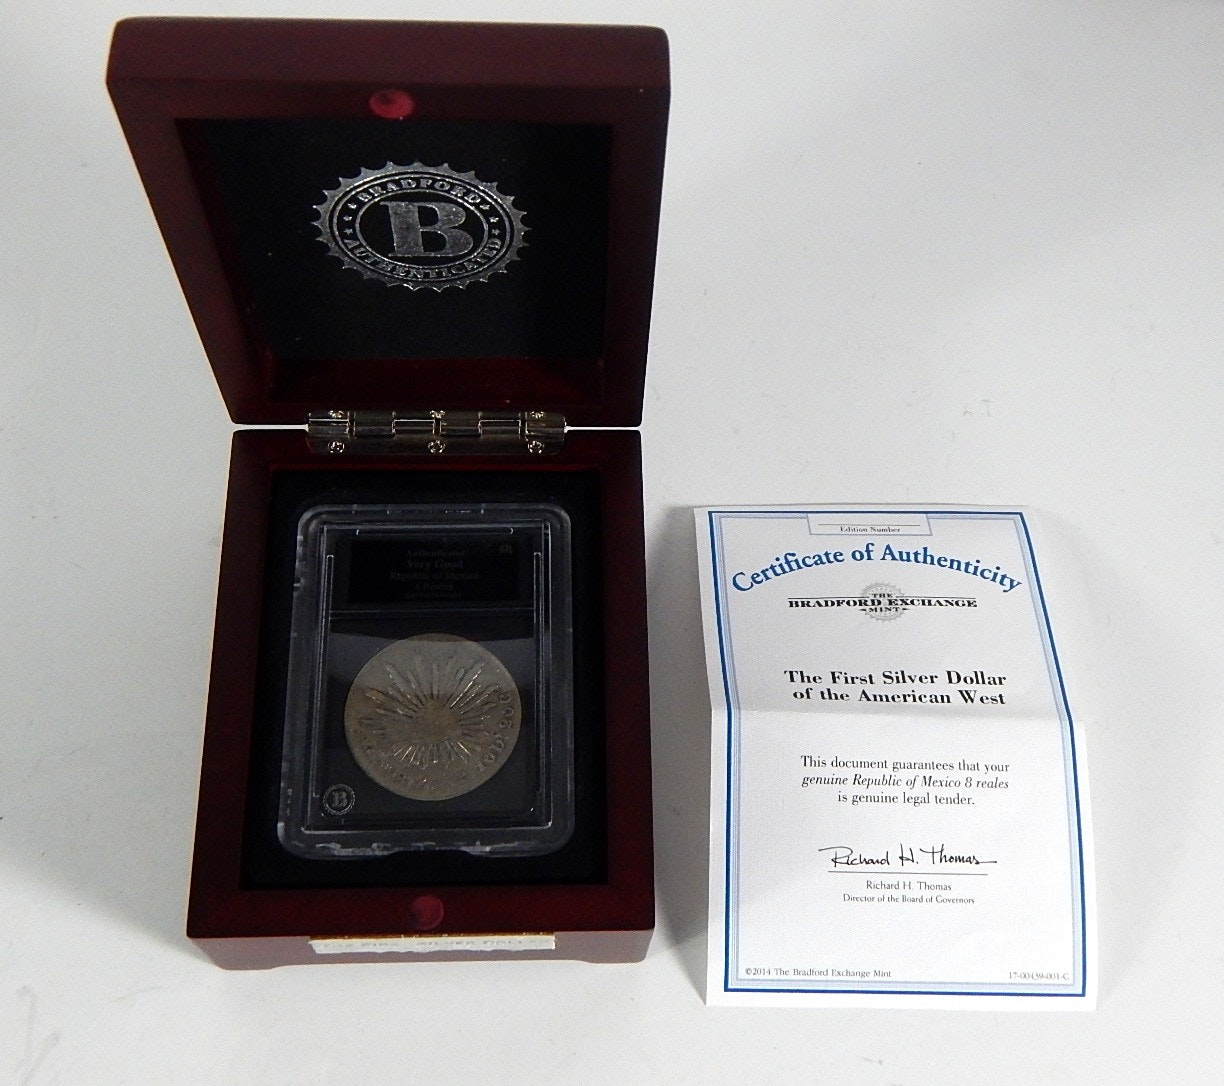 1877 First Silver Dollar of the American West from The Bradford Mint